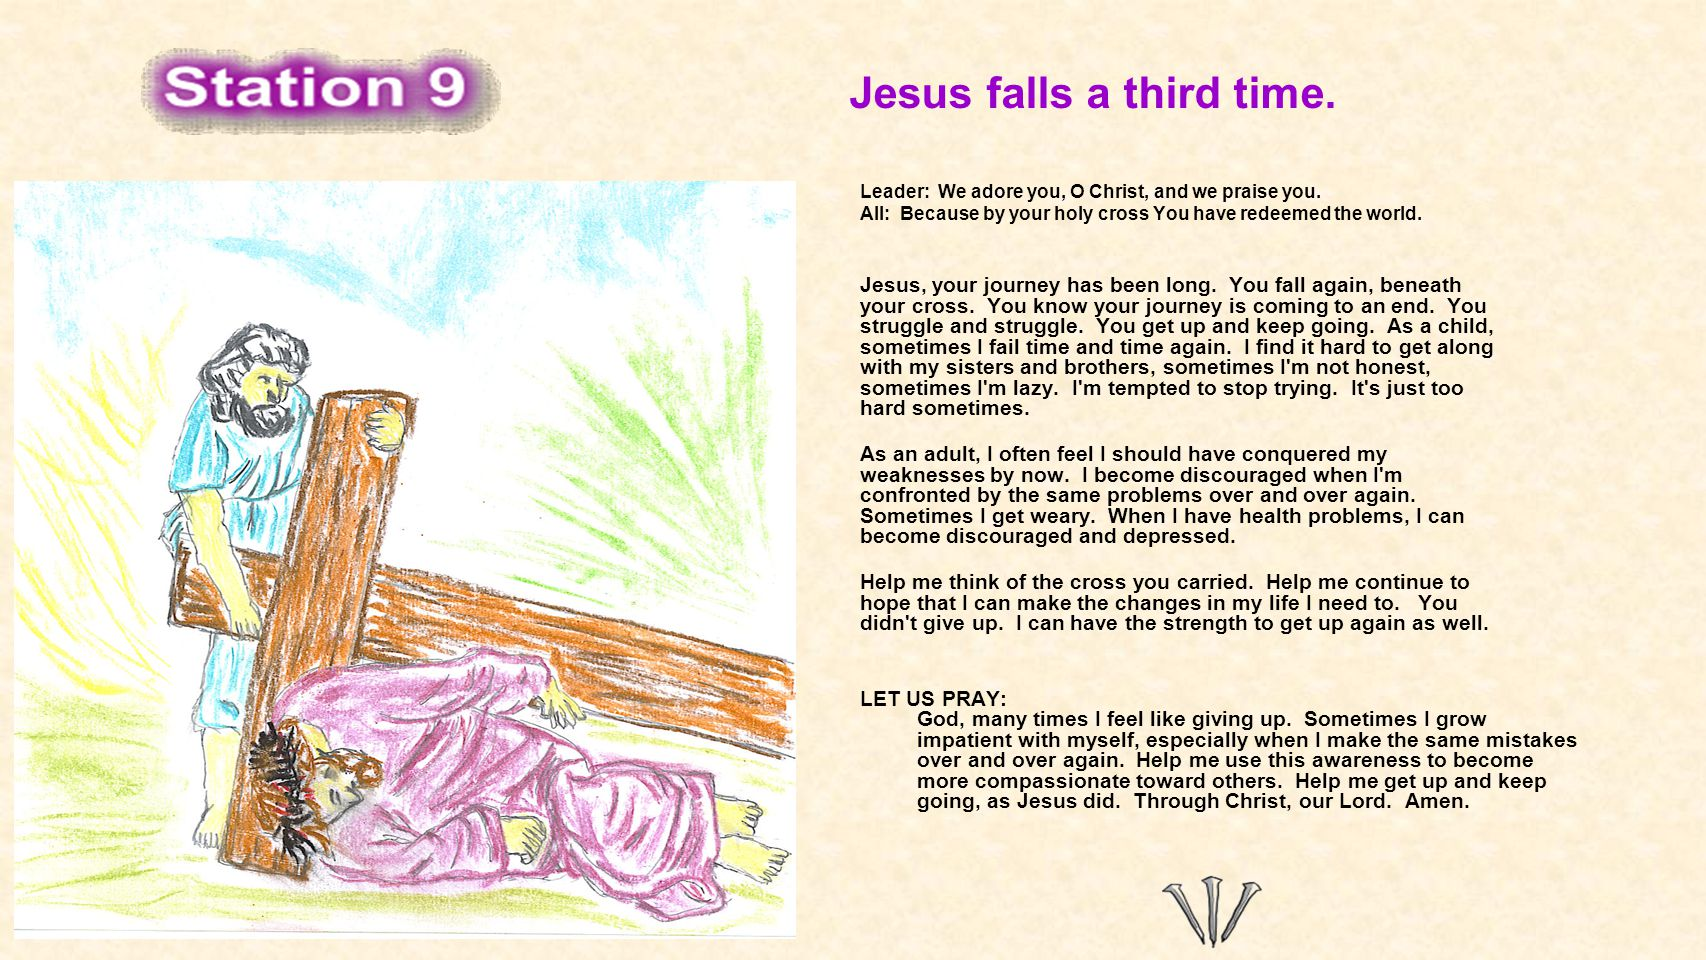 Jesus falls a third time. Leader: We adore you, O Christ, and we praise you.